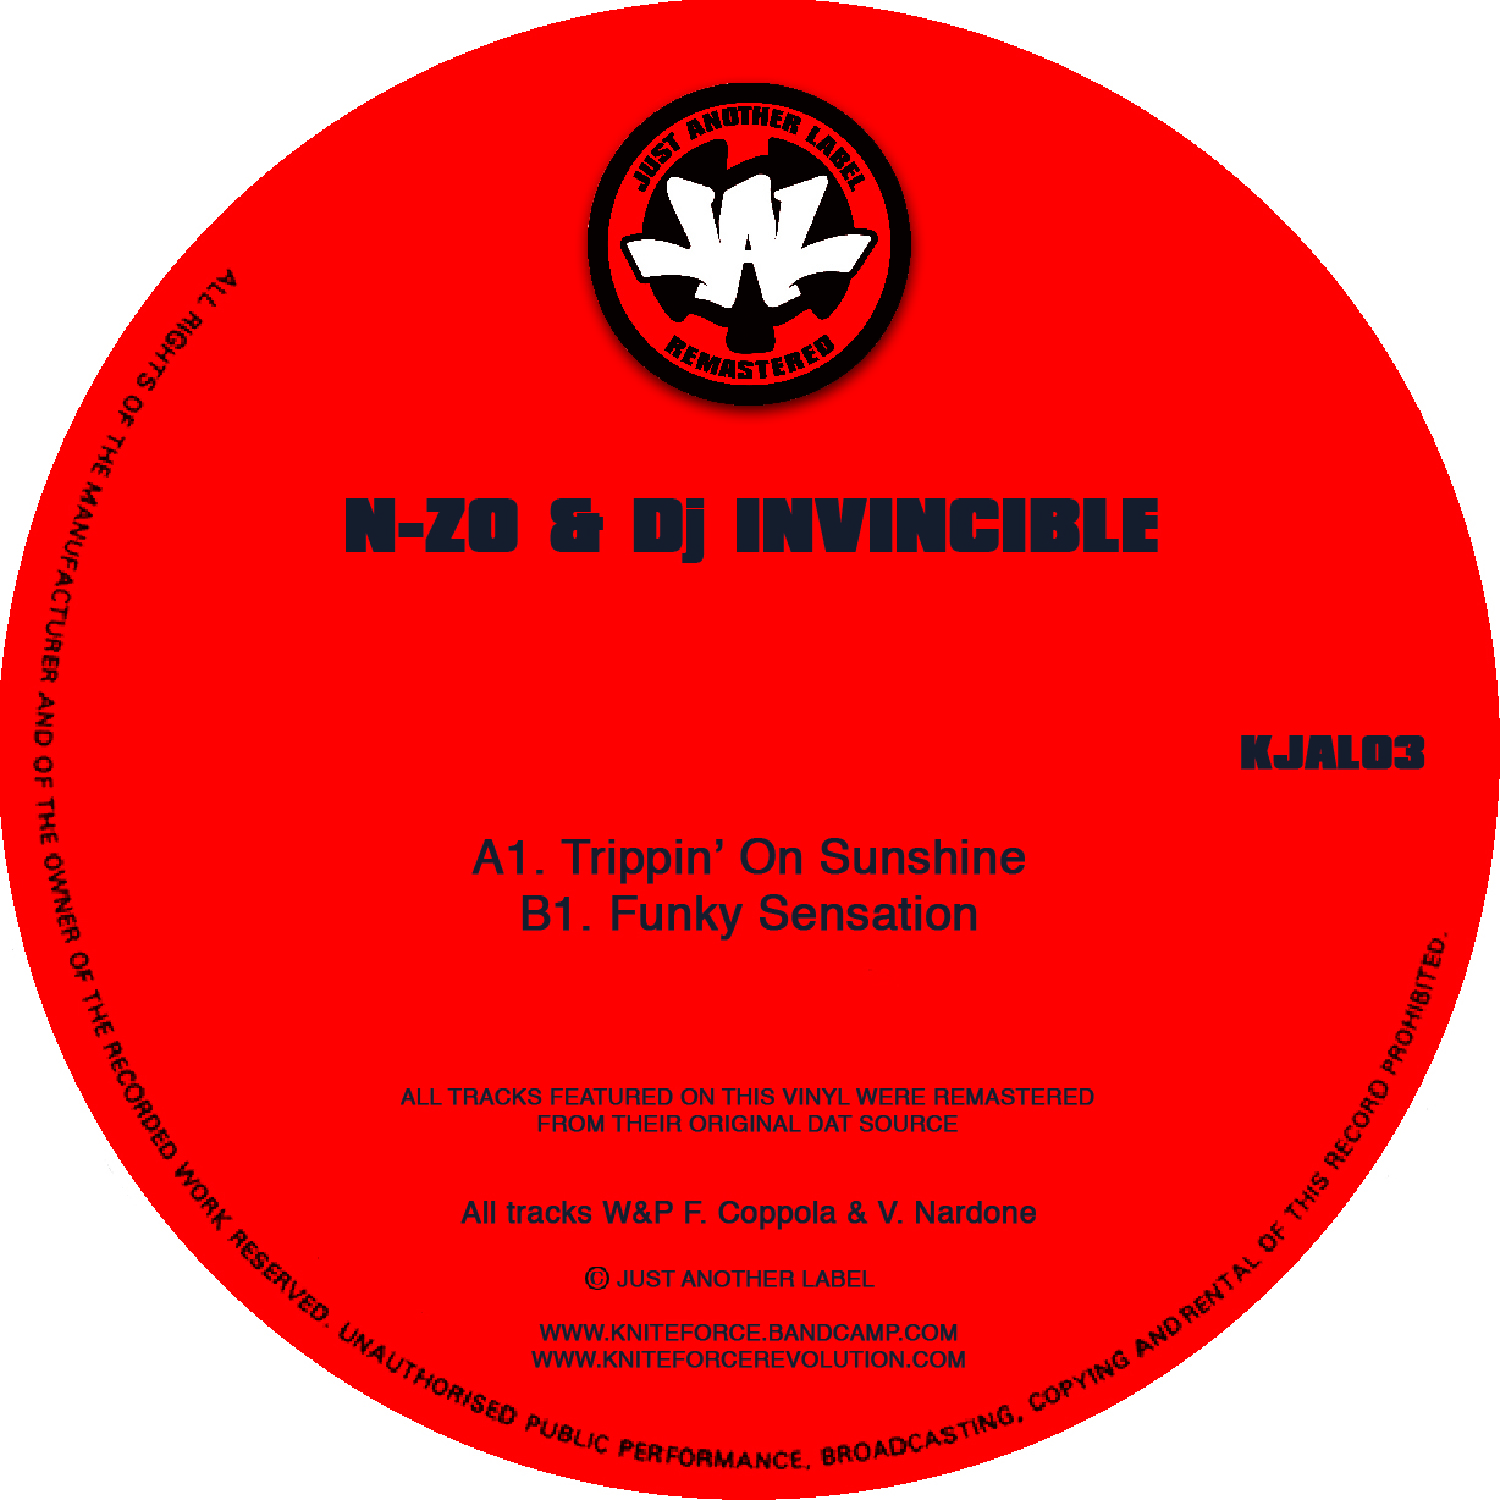 "[KJAL03] N-Zo & Invincible - Trippin' On Sunshine EP (12"" Vinyl + Digital)"